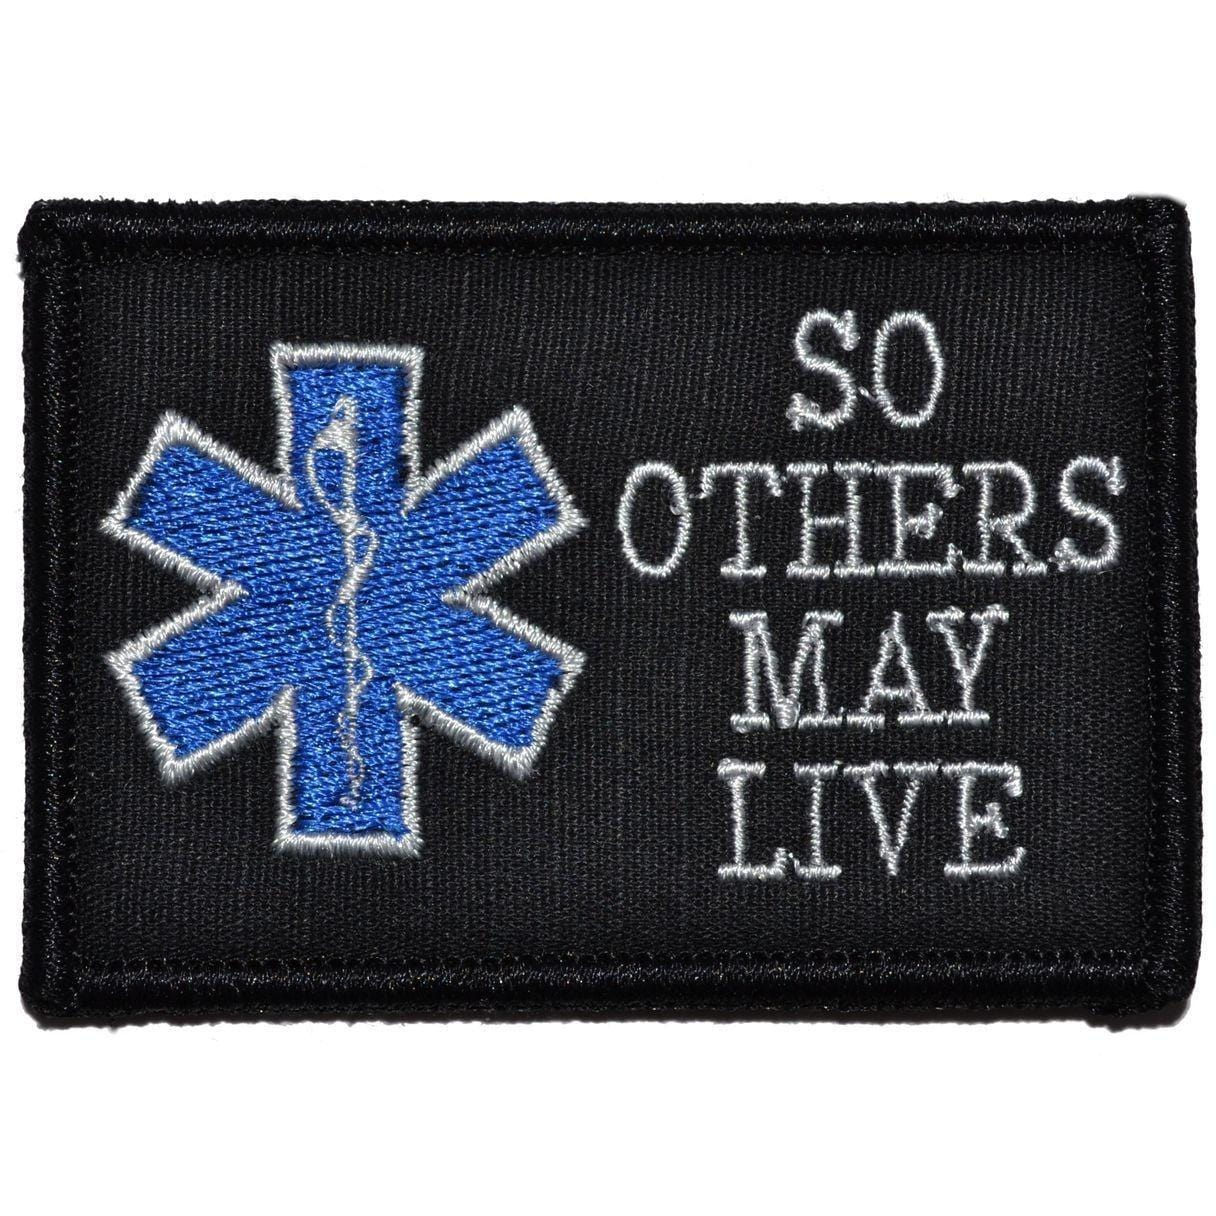 Tactical Gear Junkie Patches Black EMS So Others May Live - 2x3 Patch